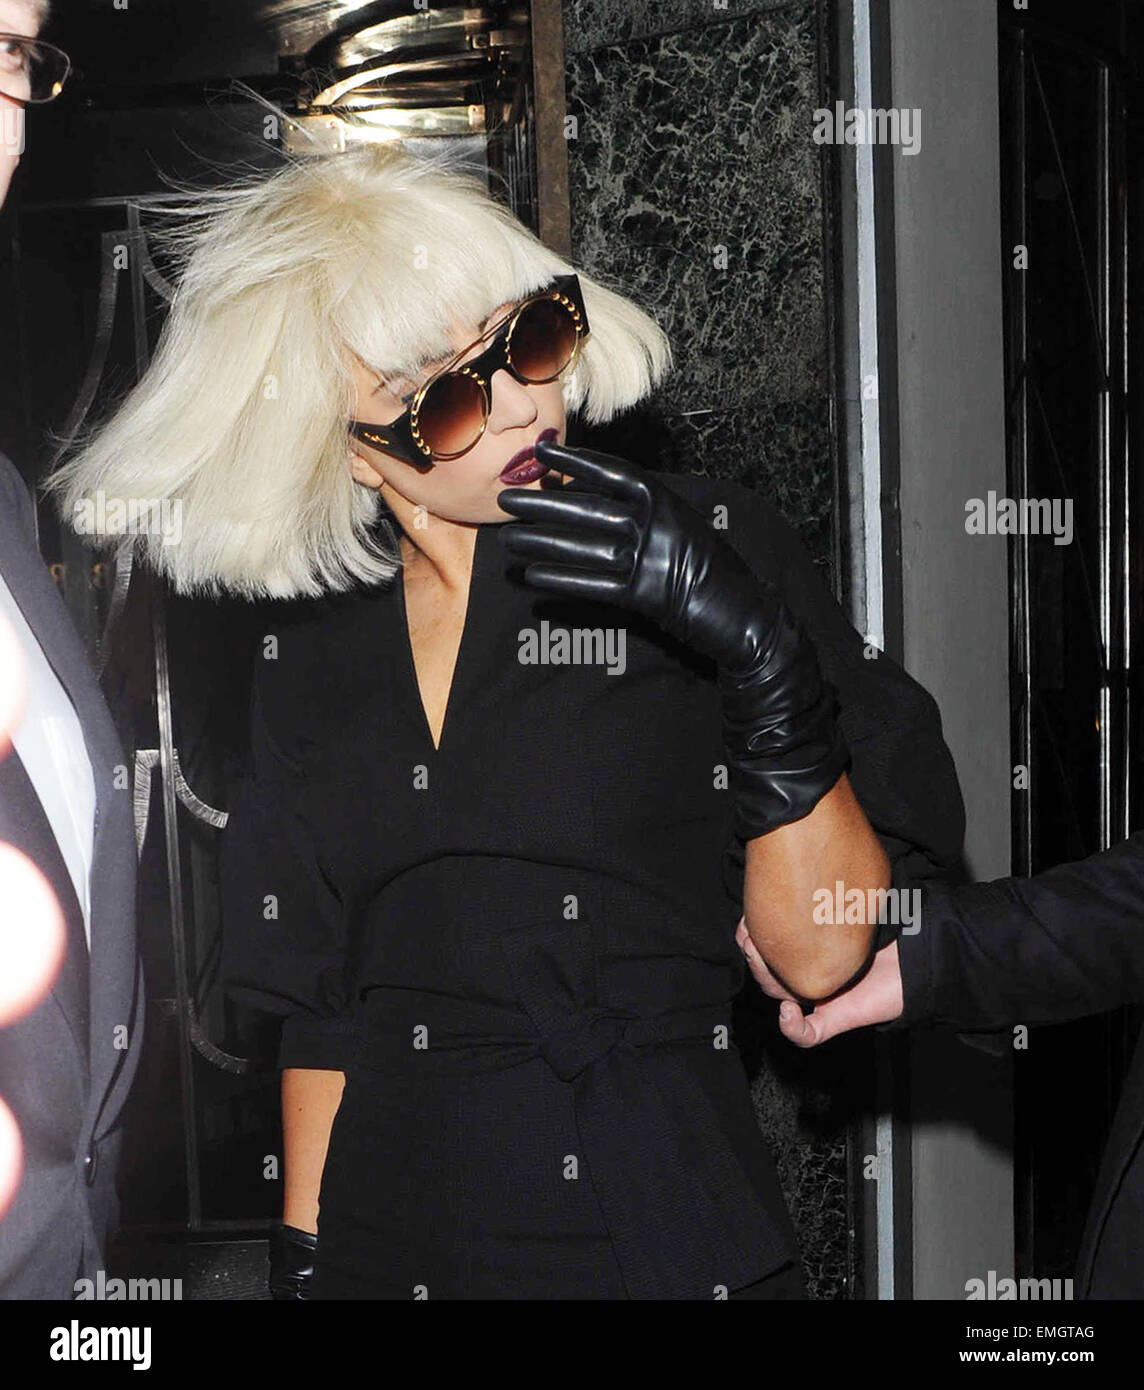 04.NOVEMBER.2010 LONDON  LADY GAGA LEAVING HER LONDON HOTEL TO HEAD TO ABBEY ROAD RECORDING STUDIOS IN ST JOHNS Stock Photo